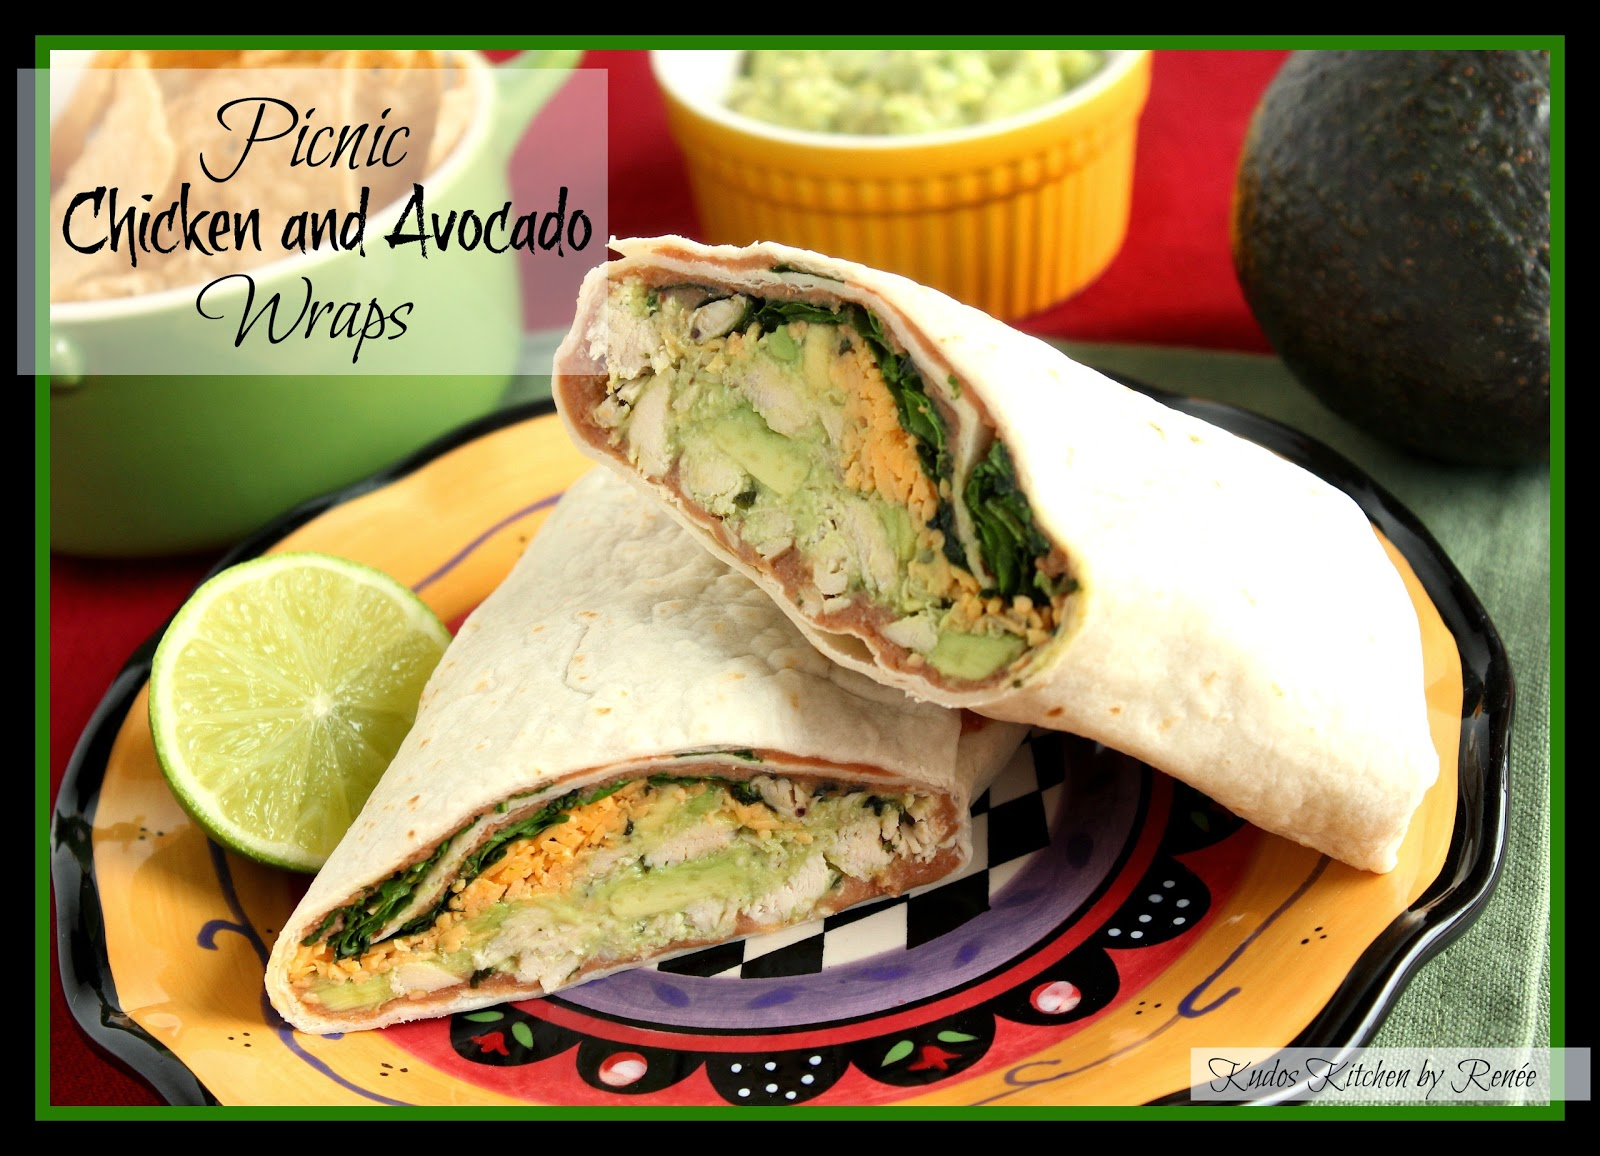 Picnic Chicken and Avocado Wraps Recipe - kudoskitchenbyrenee.com